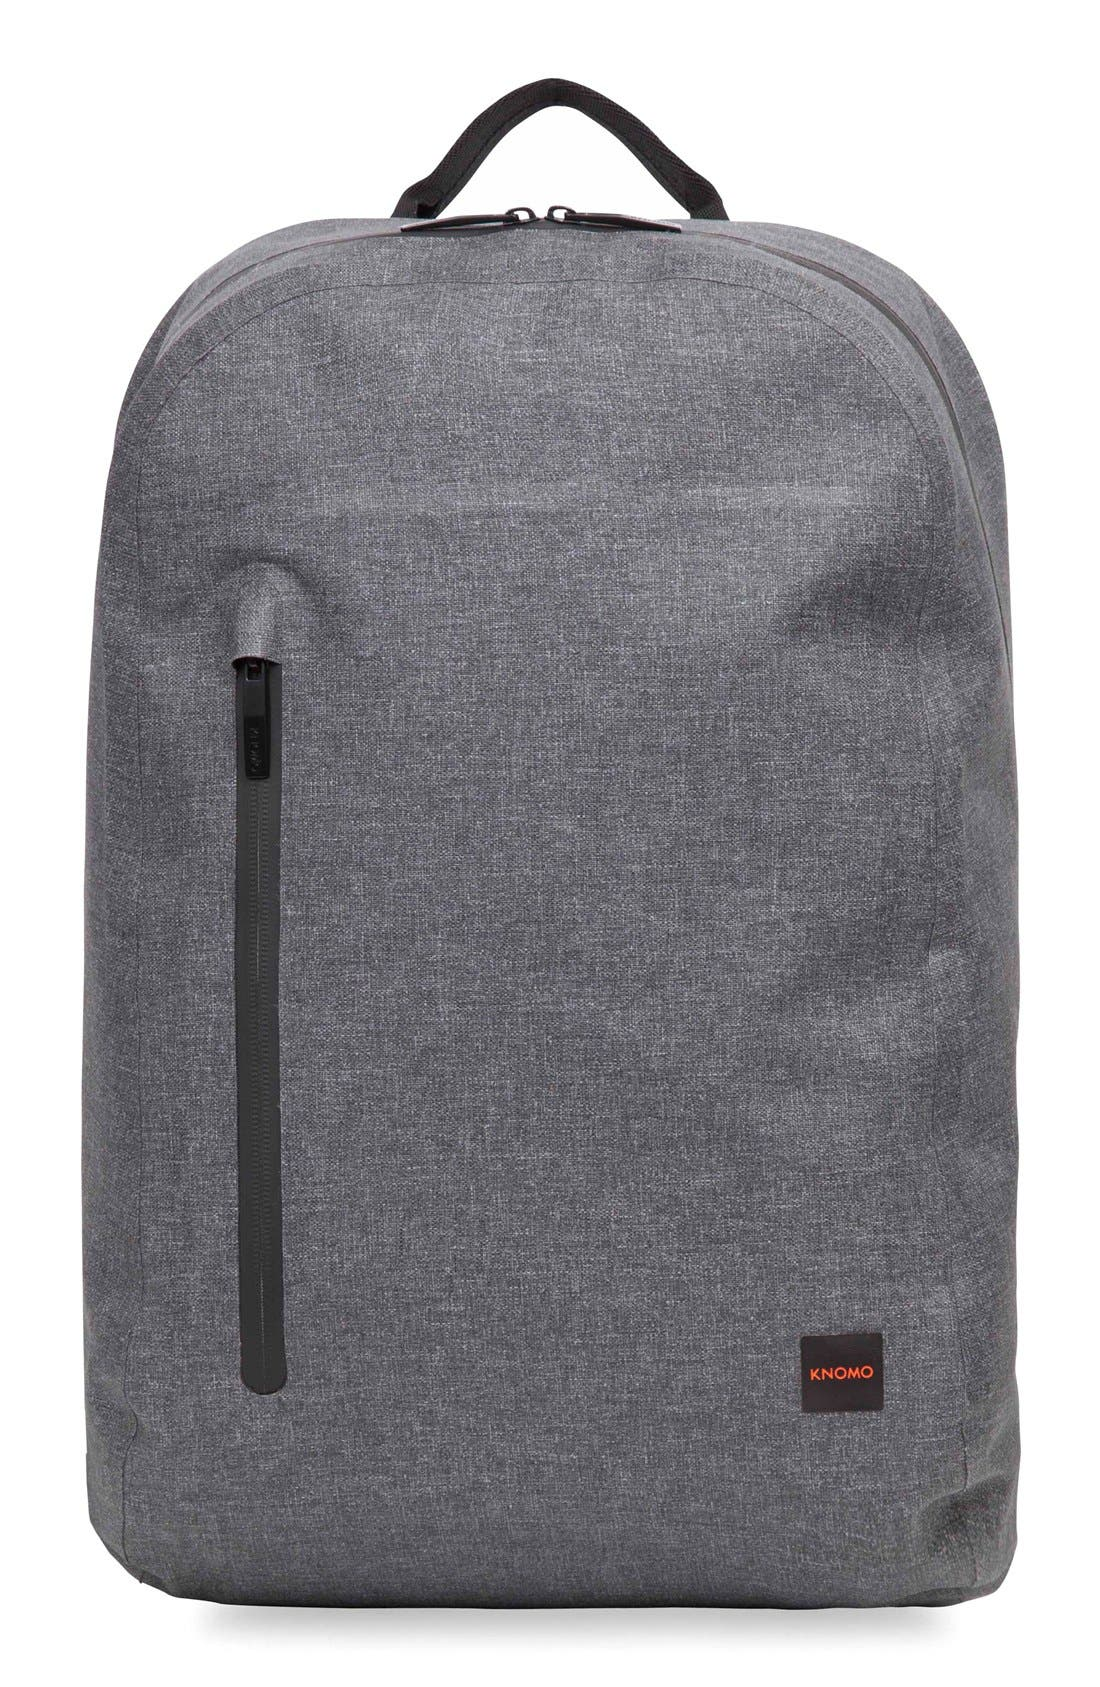 KNOMO London Thames Harpsden Backpack